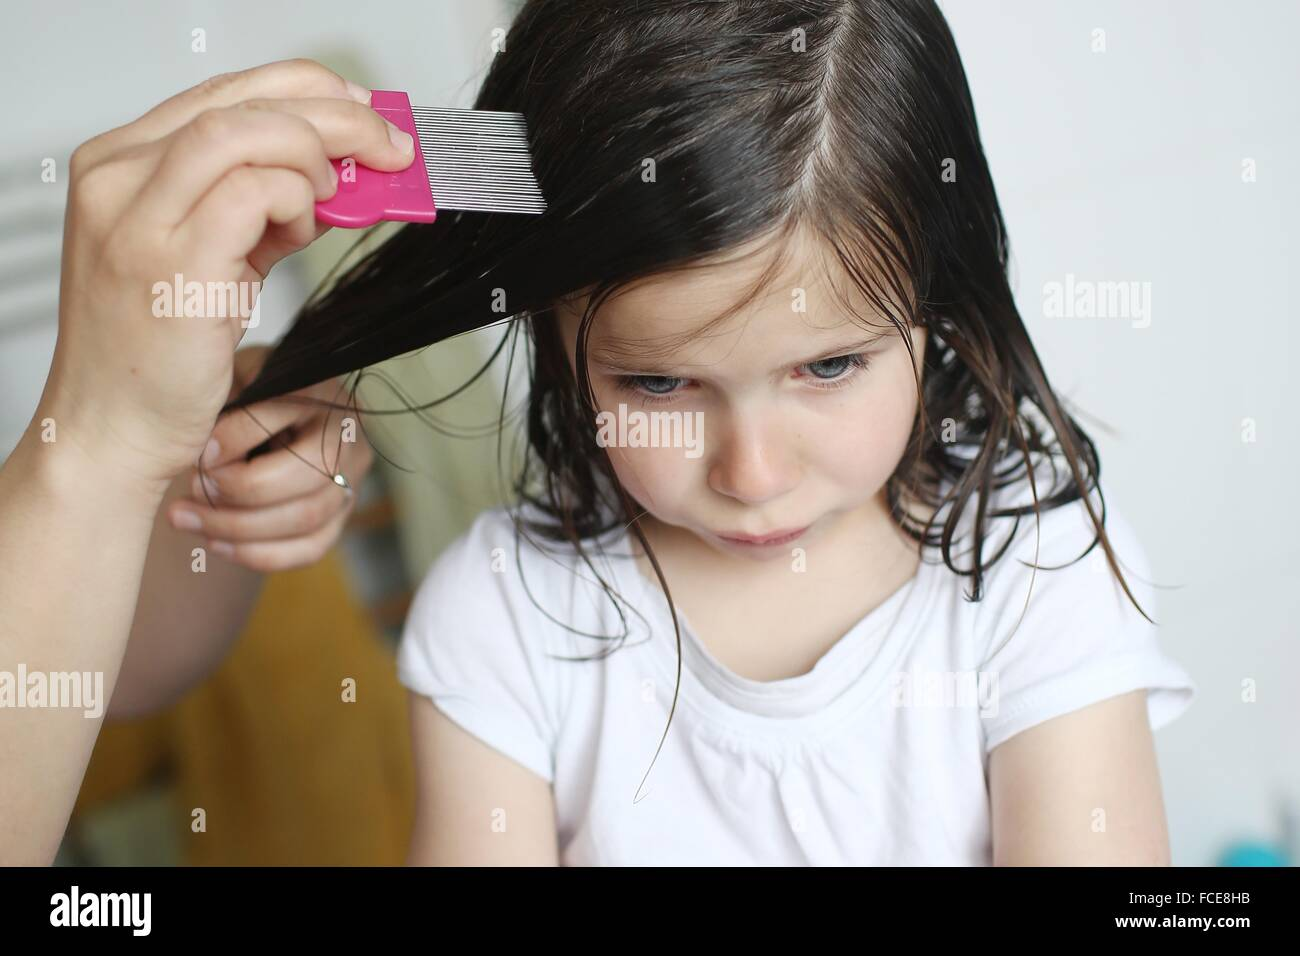 A mother passes a lice comb in the hair of her 6 years old girl - Stock Image